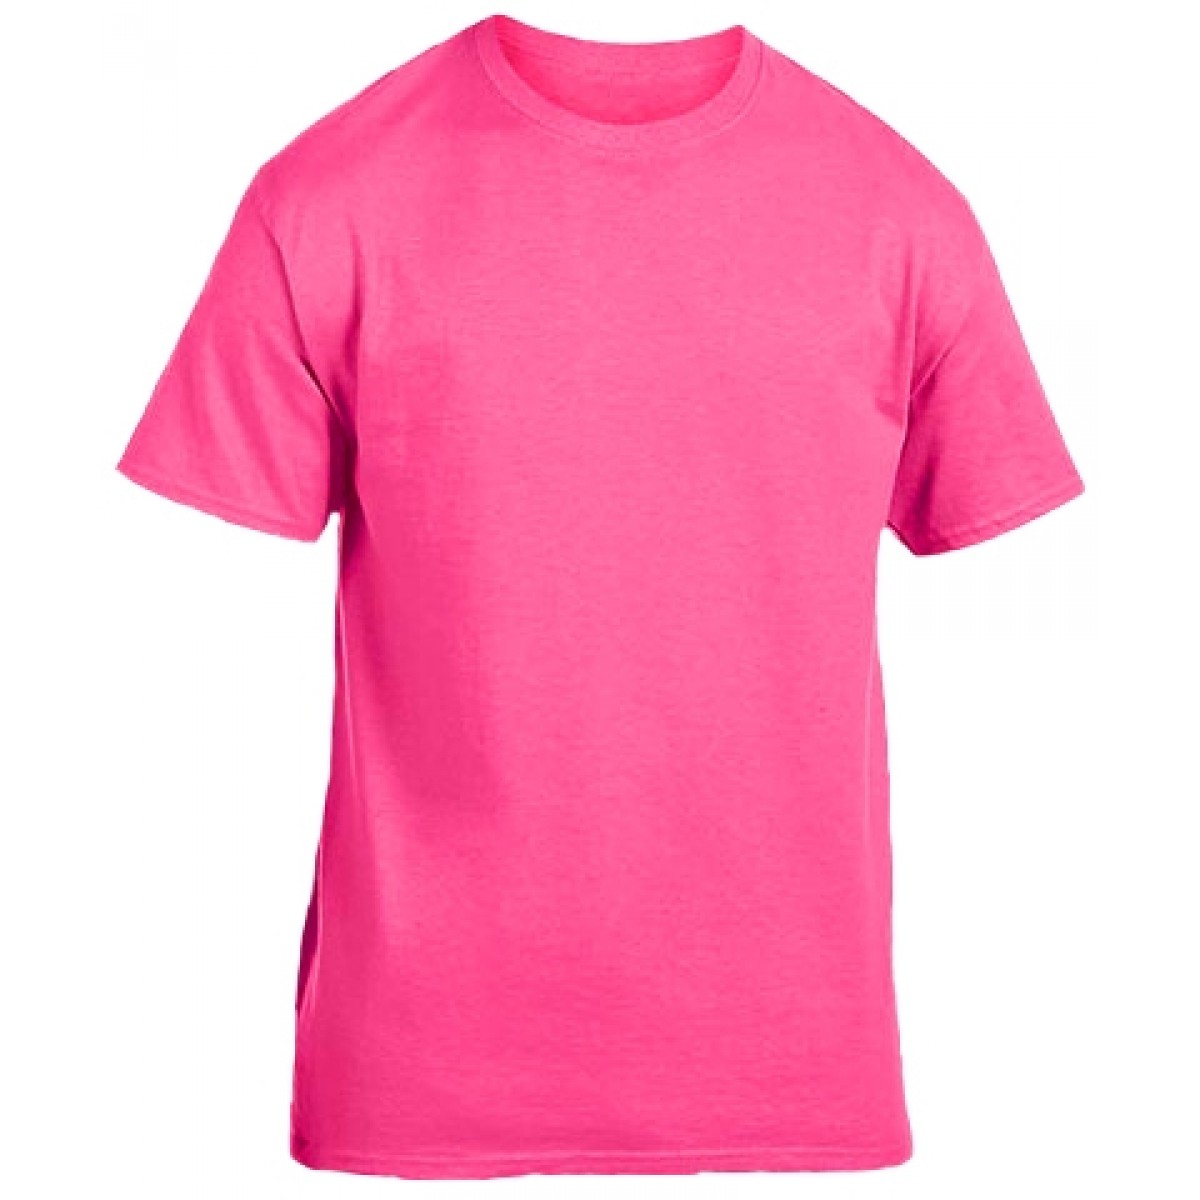 Cotton Short Sleeve T-Shirt / Safety Pink